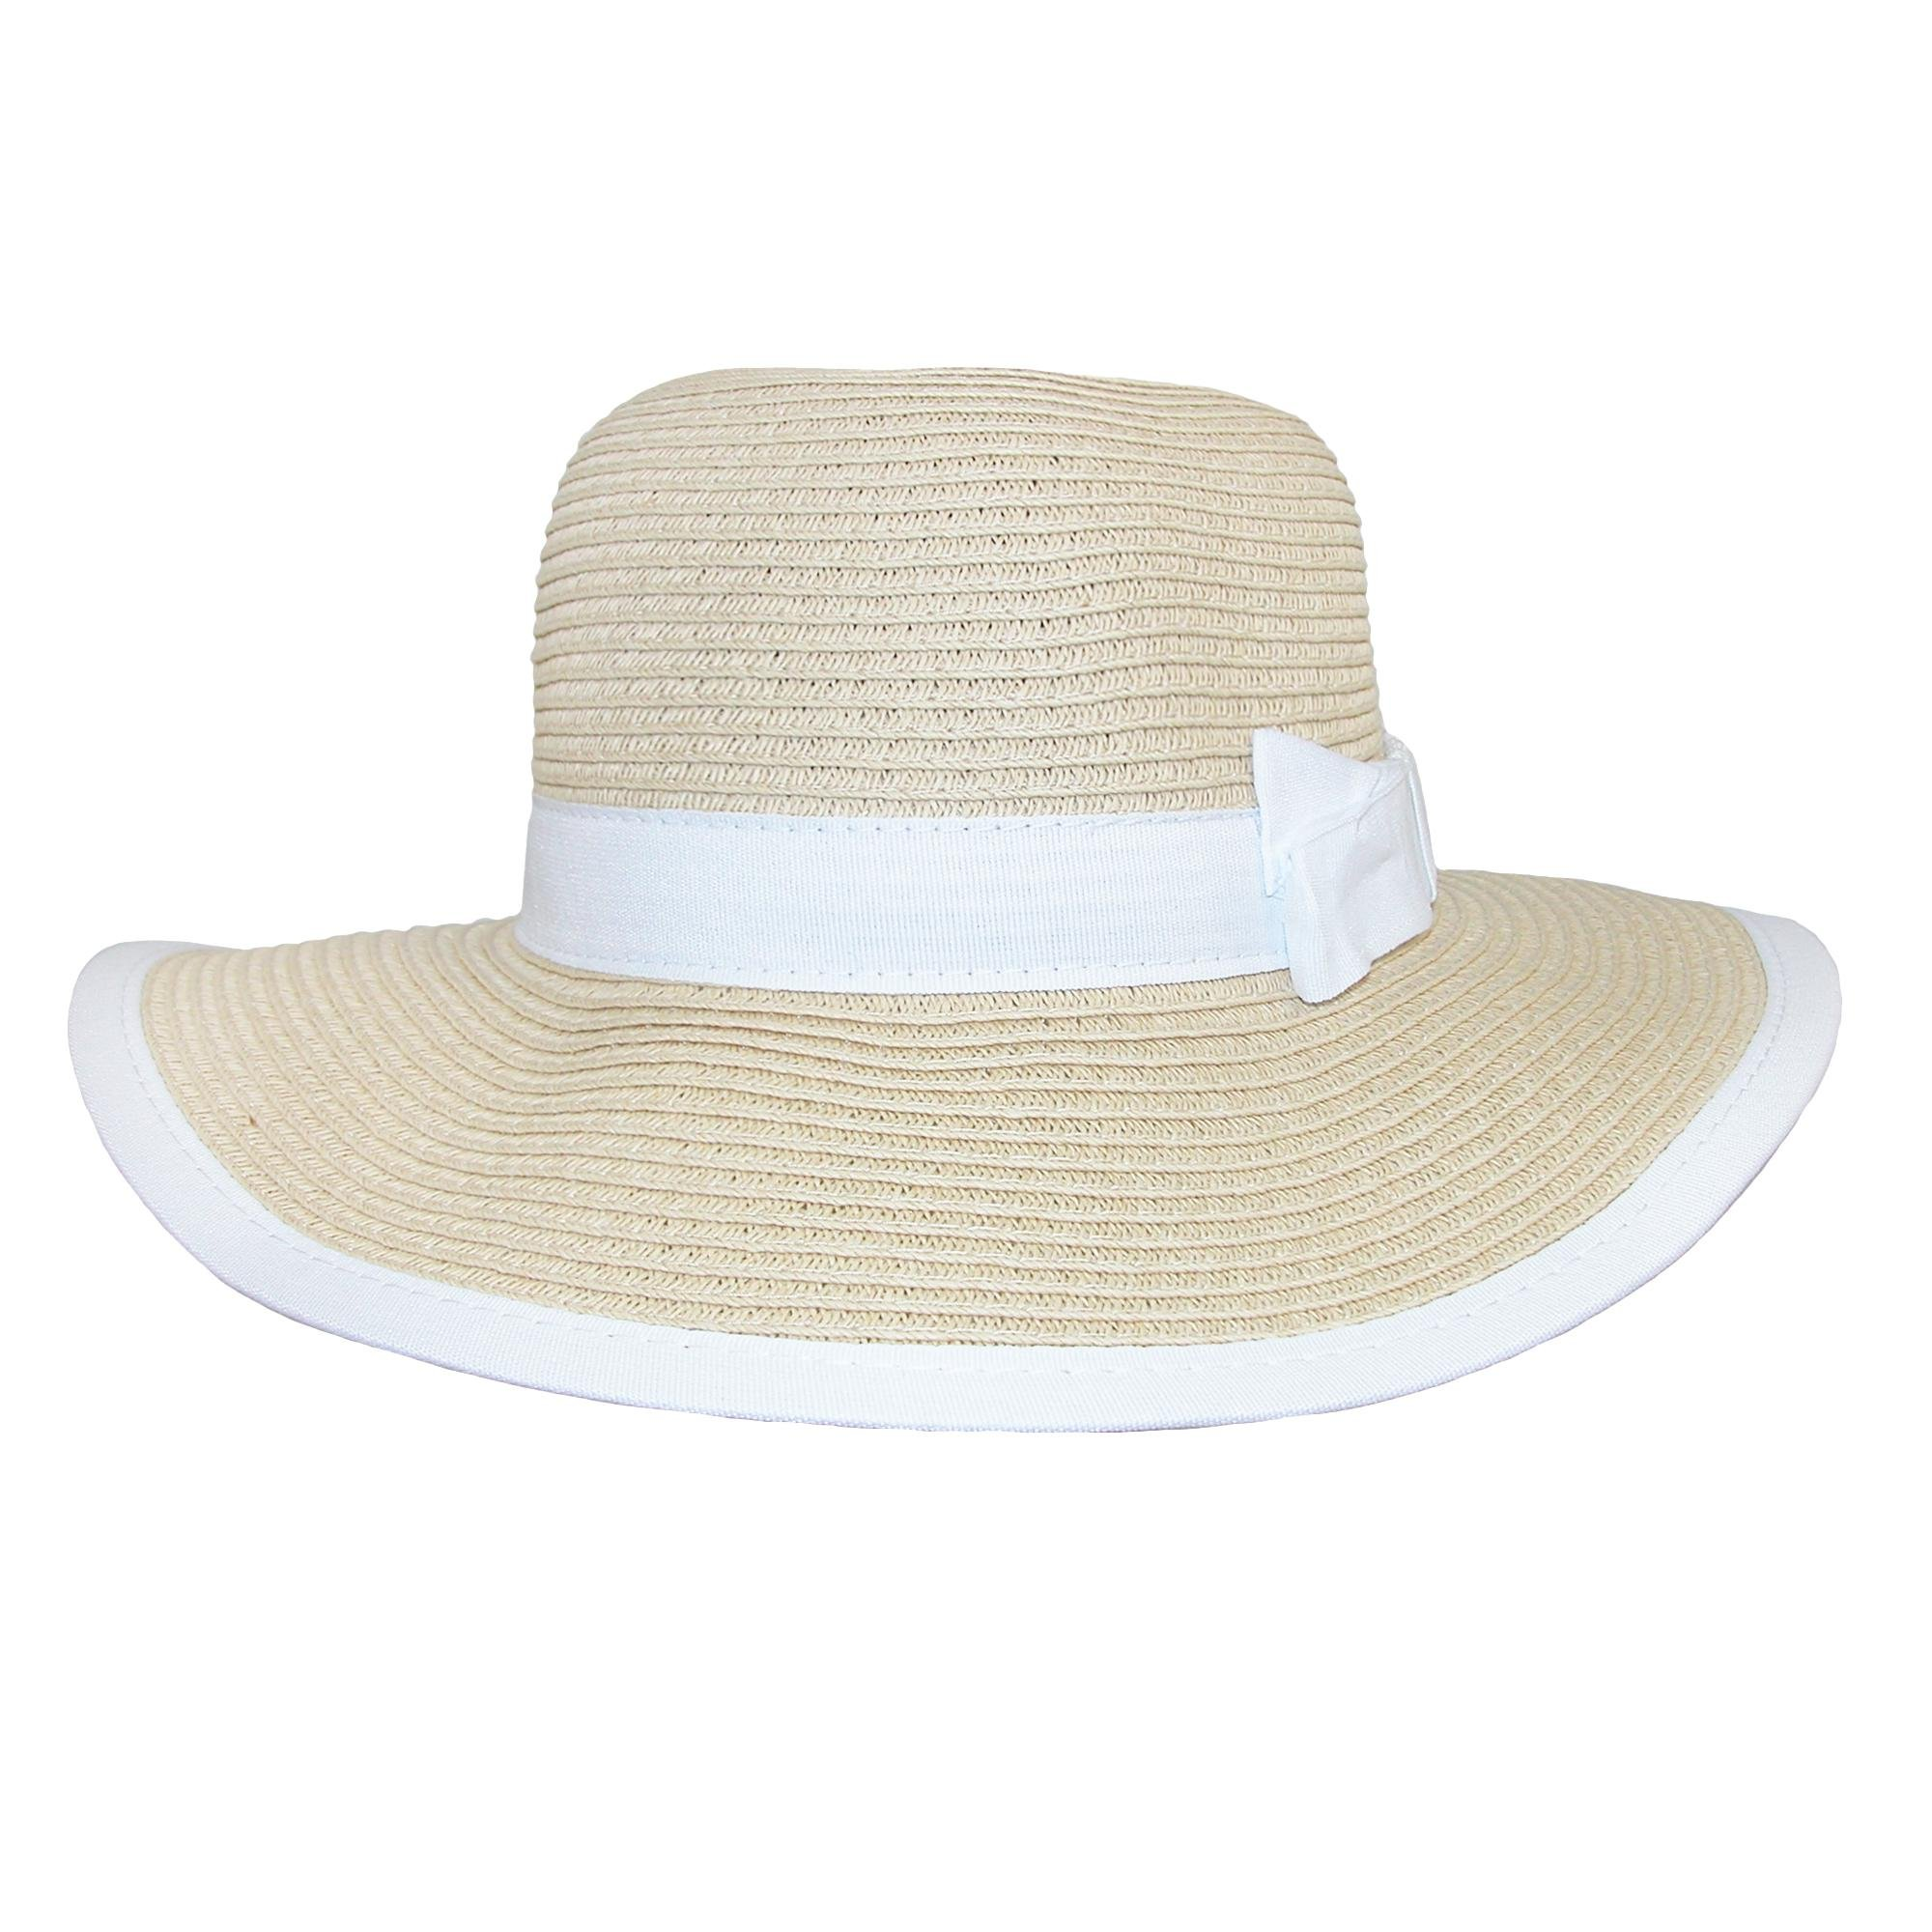 CTM Girls' Sun Hat with Bow and Edge Trim, Natural